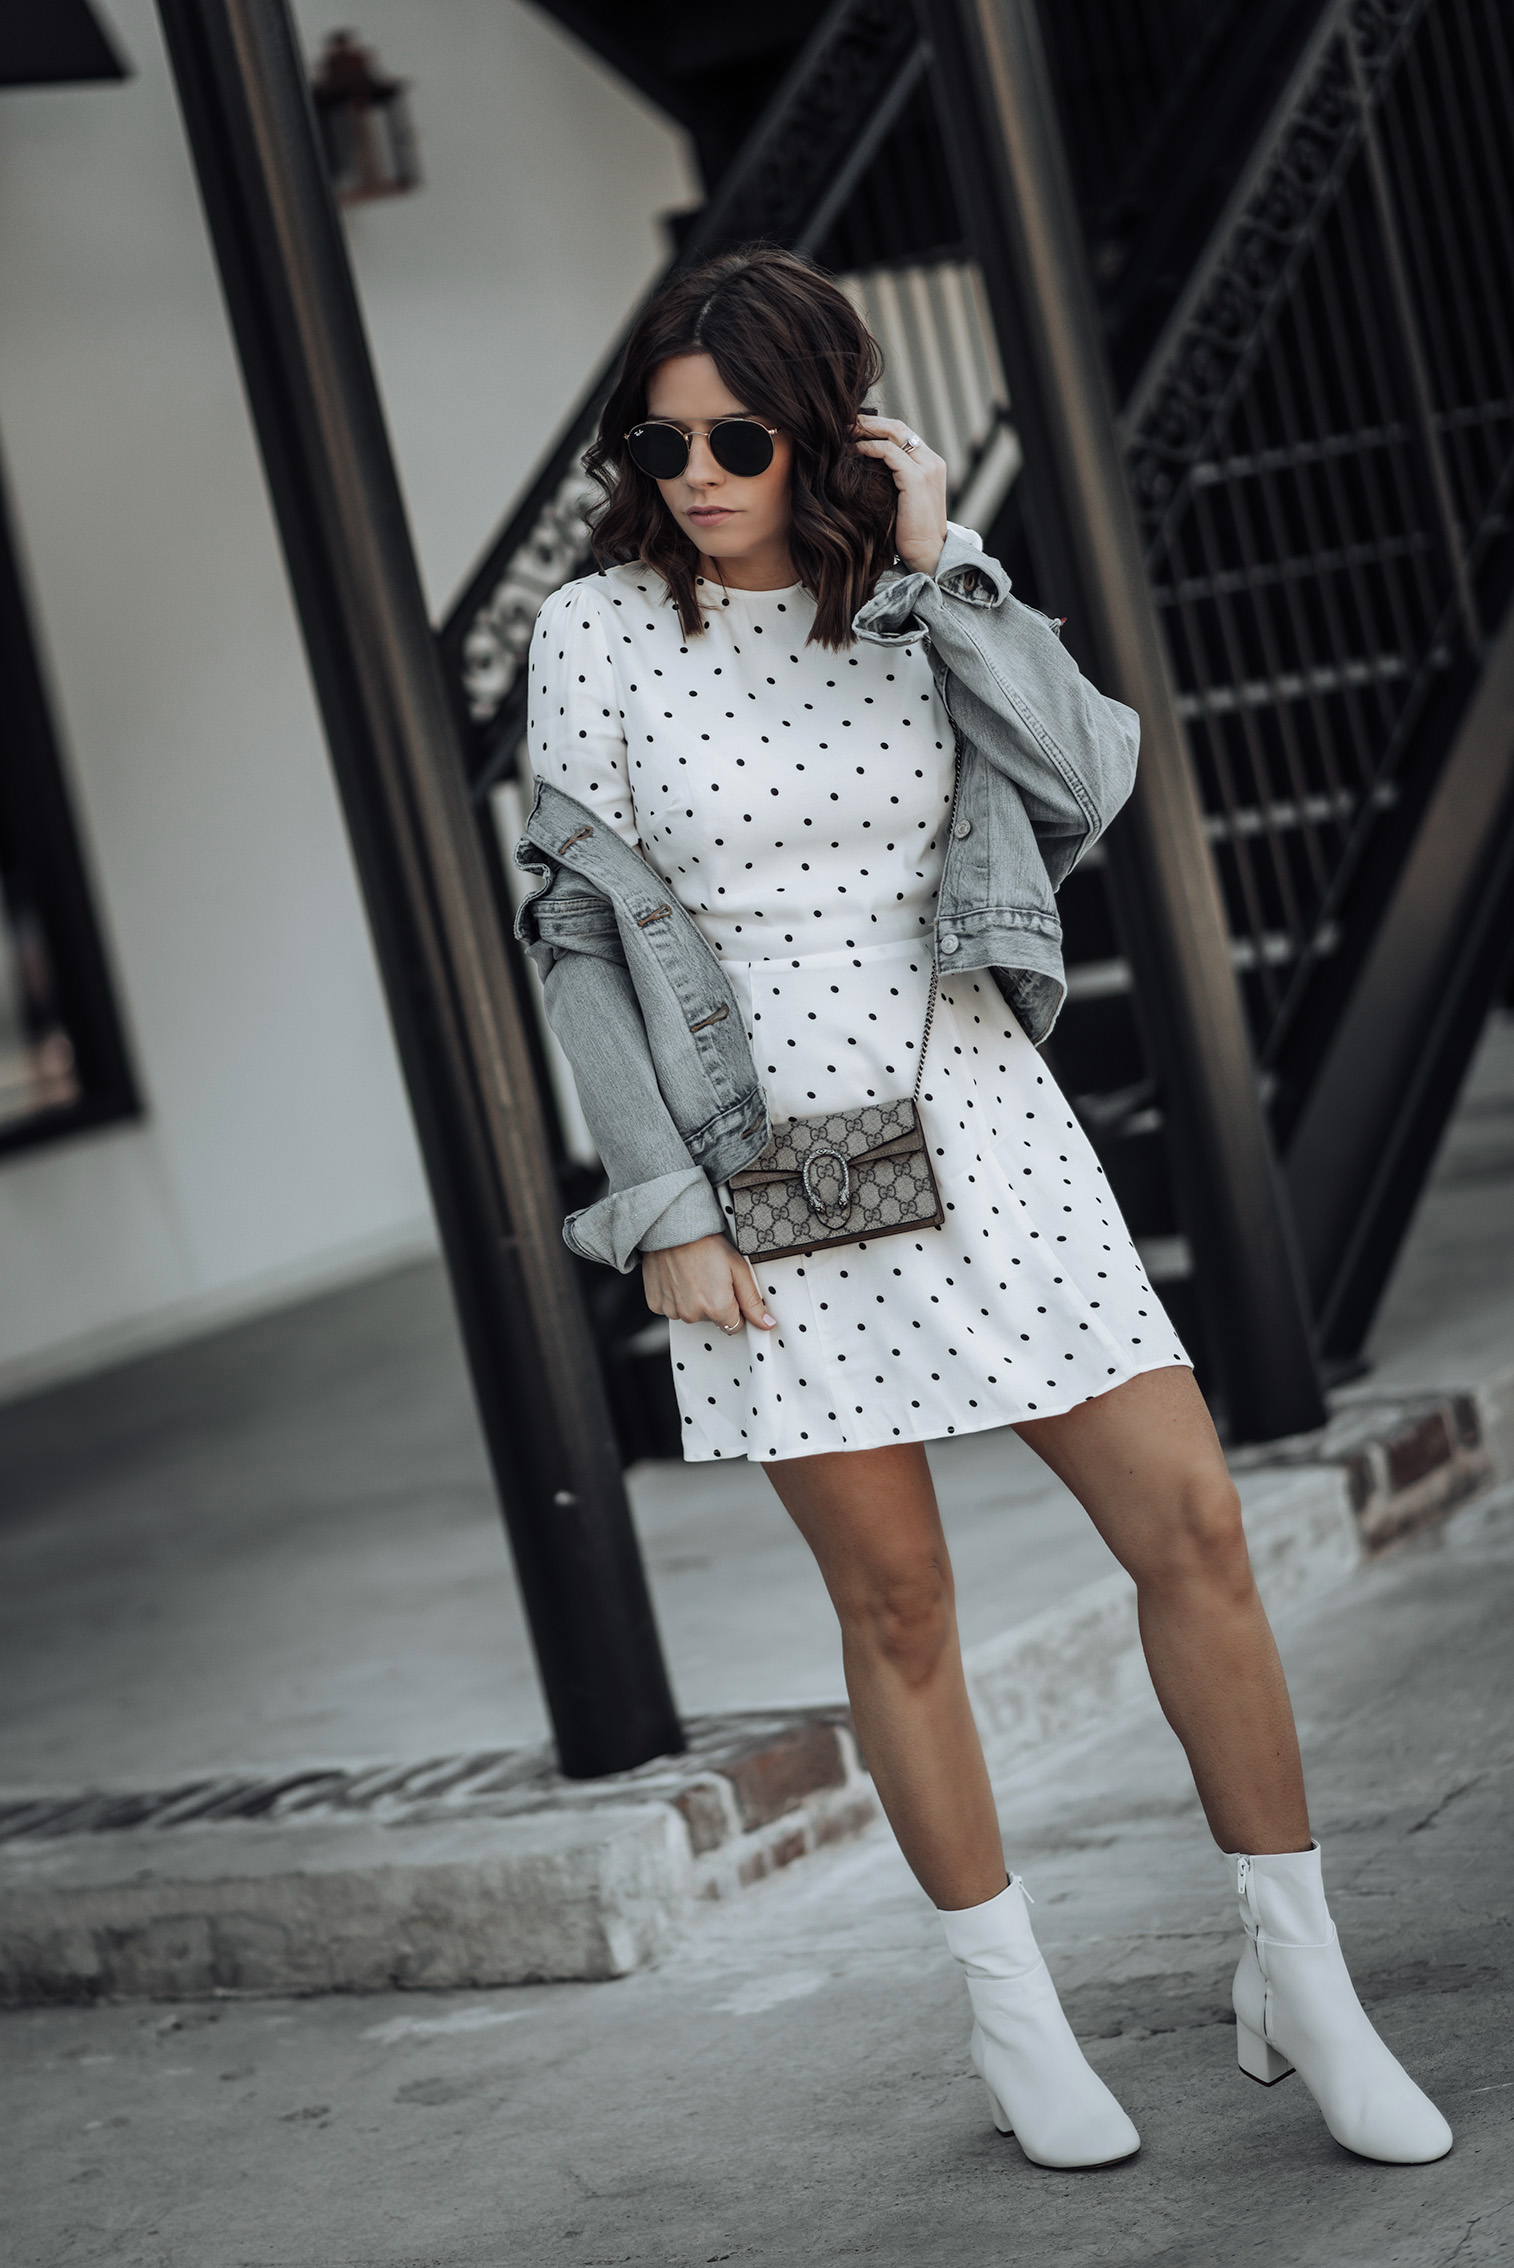 Dot Dress by Reformation | Levi's Ex Boyfriend Denim Jacket | H&M White Ankle Boots | #liketkit #polkadot #streetstyle